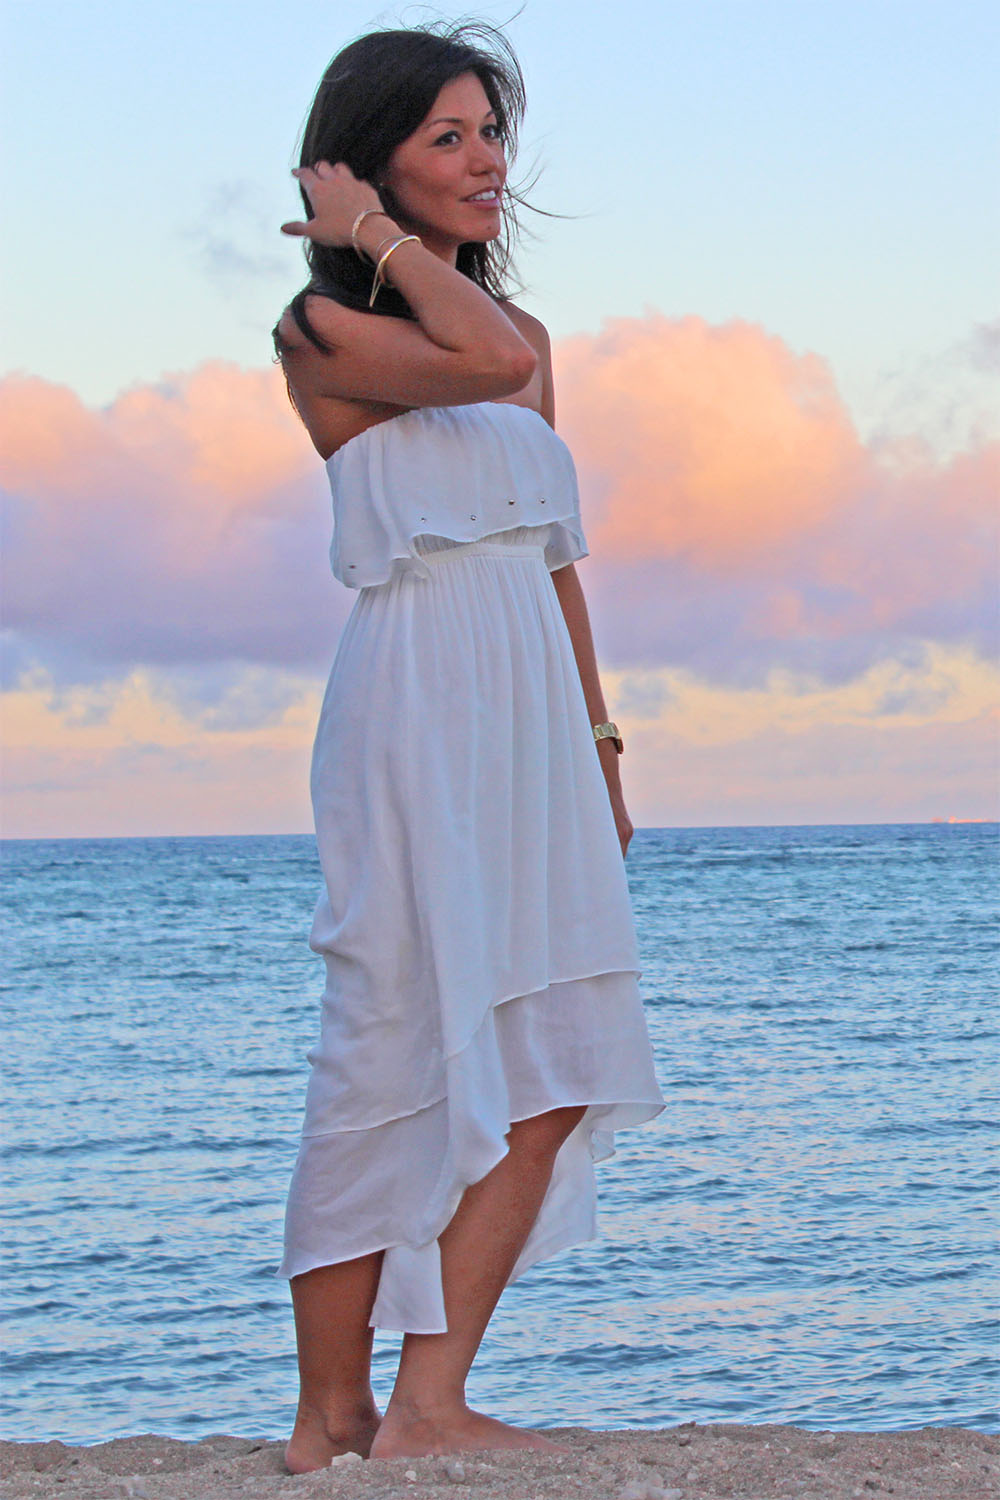 Hawaiian Wedding Dresses amp Shirts AlohaFunWear - satukis.info